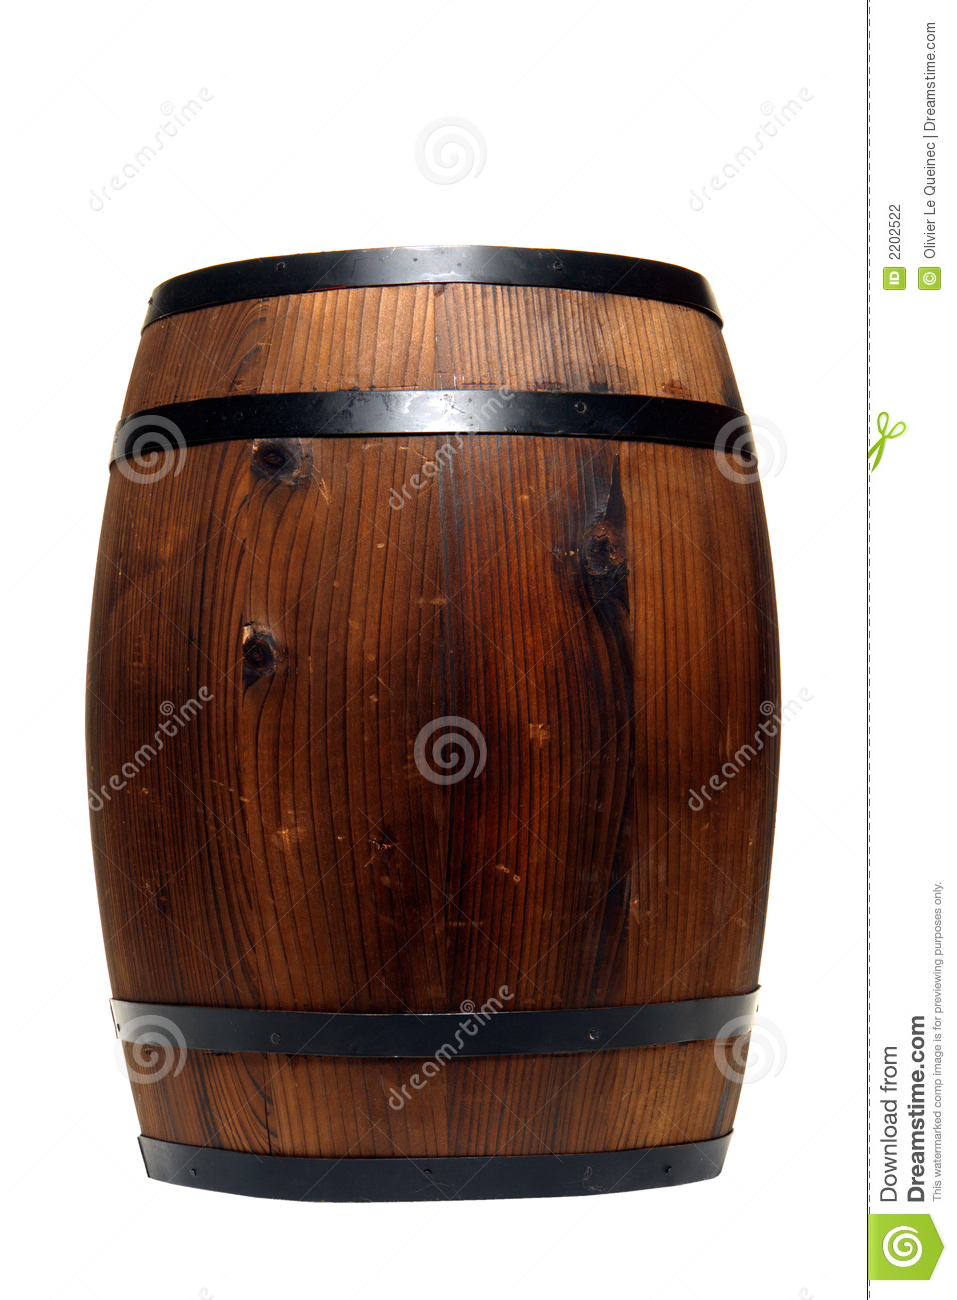 Old Whisky Barrel Or Wine Cask Wood Container Stock Photography.